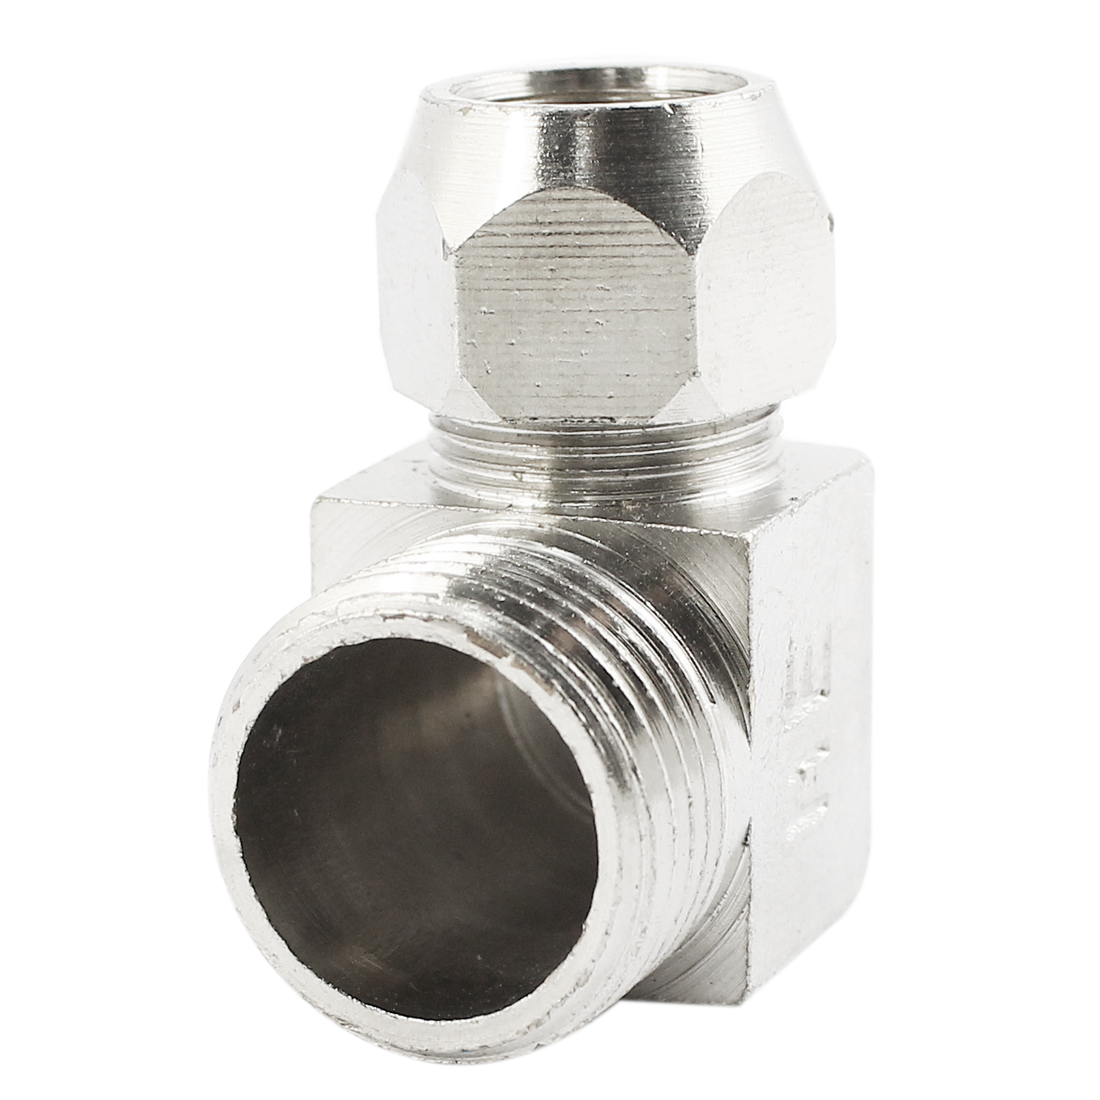 1/2PT Male Threaded Right Angle Elbow Connector Quick Coupling Coupler Silver Tone for 12mm Dia Air Pneumatic Hose